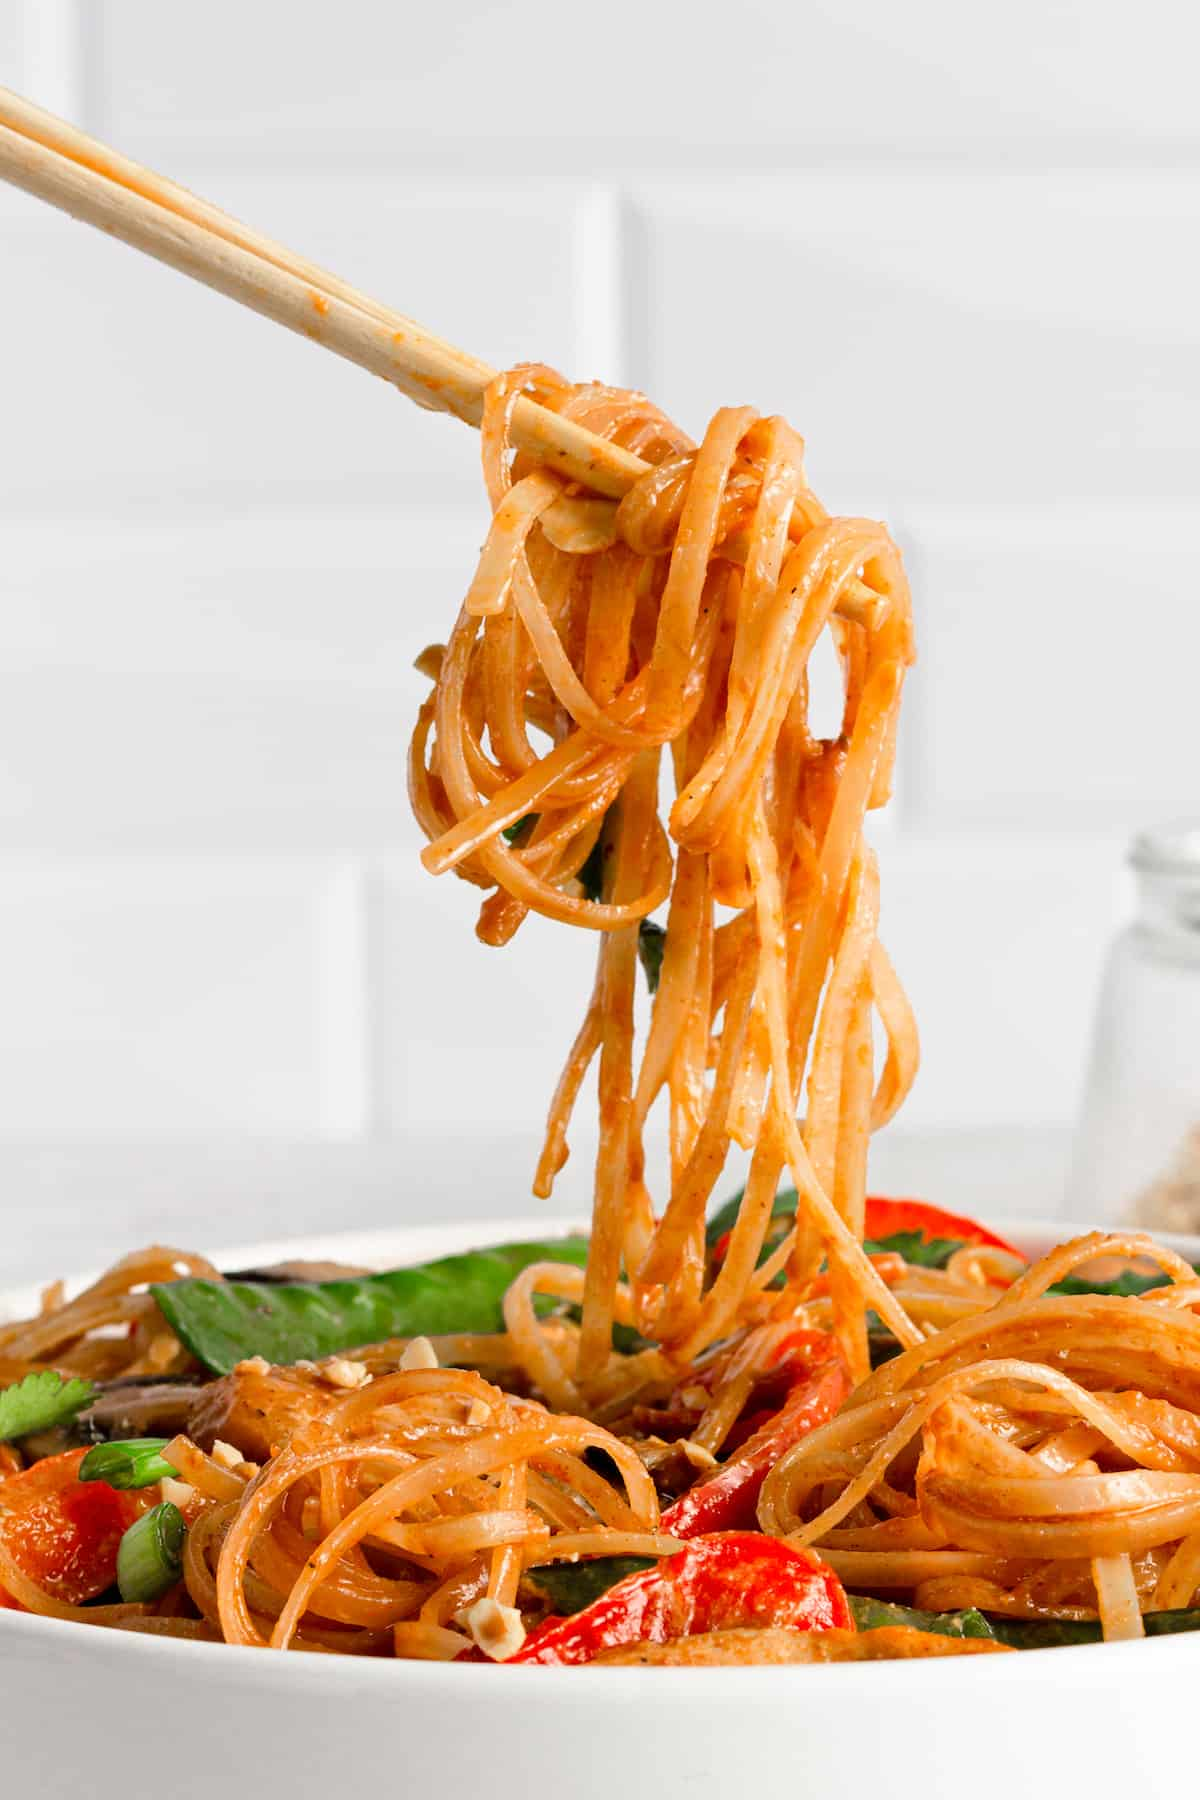 A Pair of Chopsticks Holding a Bite of Chicken Lo Mein Over the Bowl